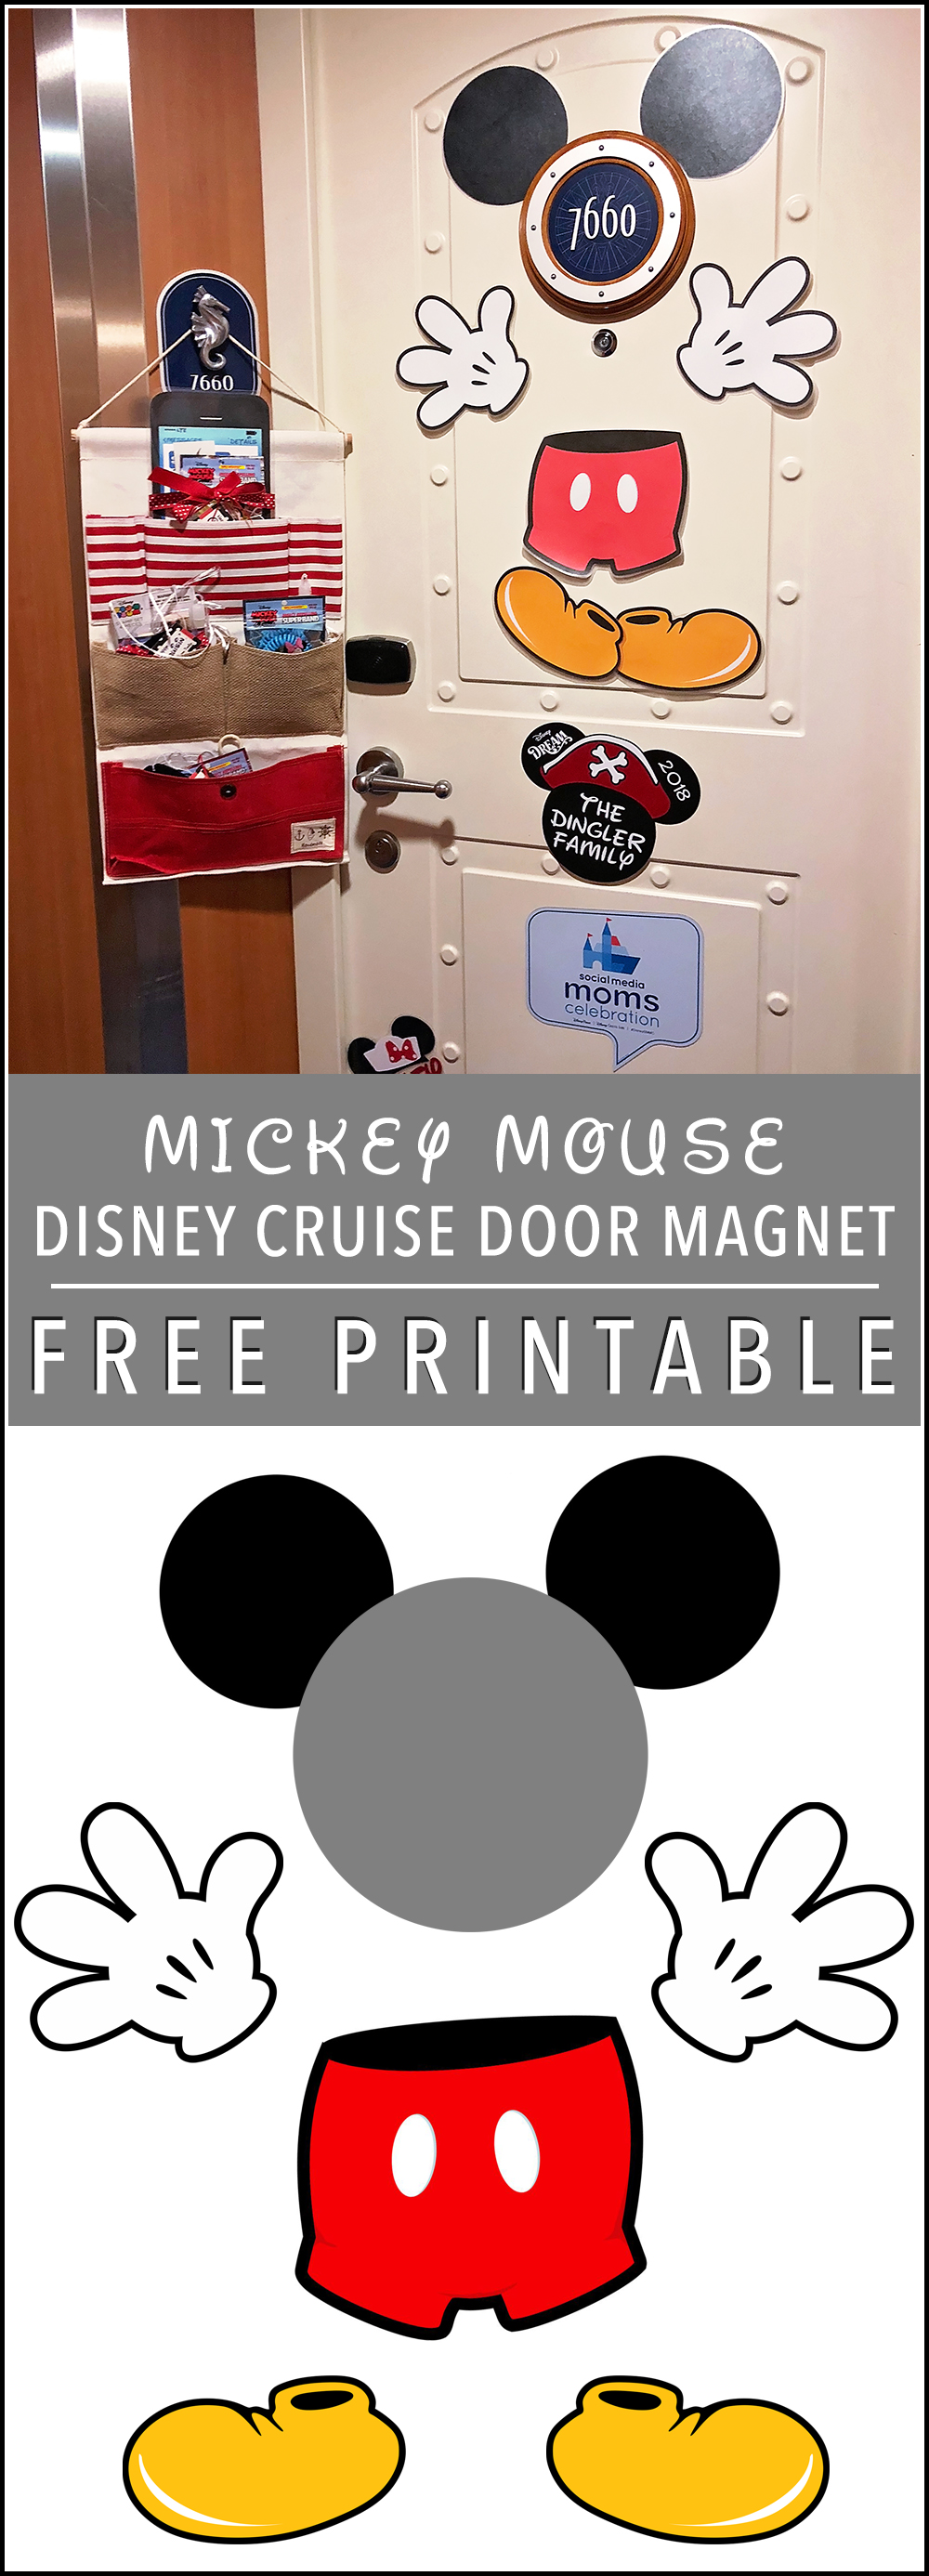 photograph about Disney Cruise Door Decorations Printable named Disney Aspiration Cruise Mickey Mouse Doorway Magnet Cost-free